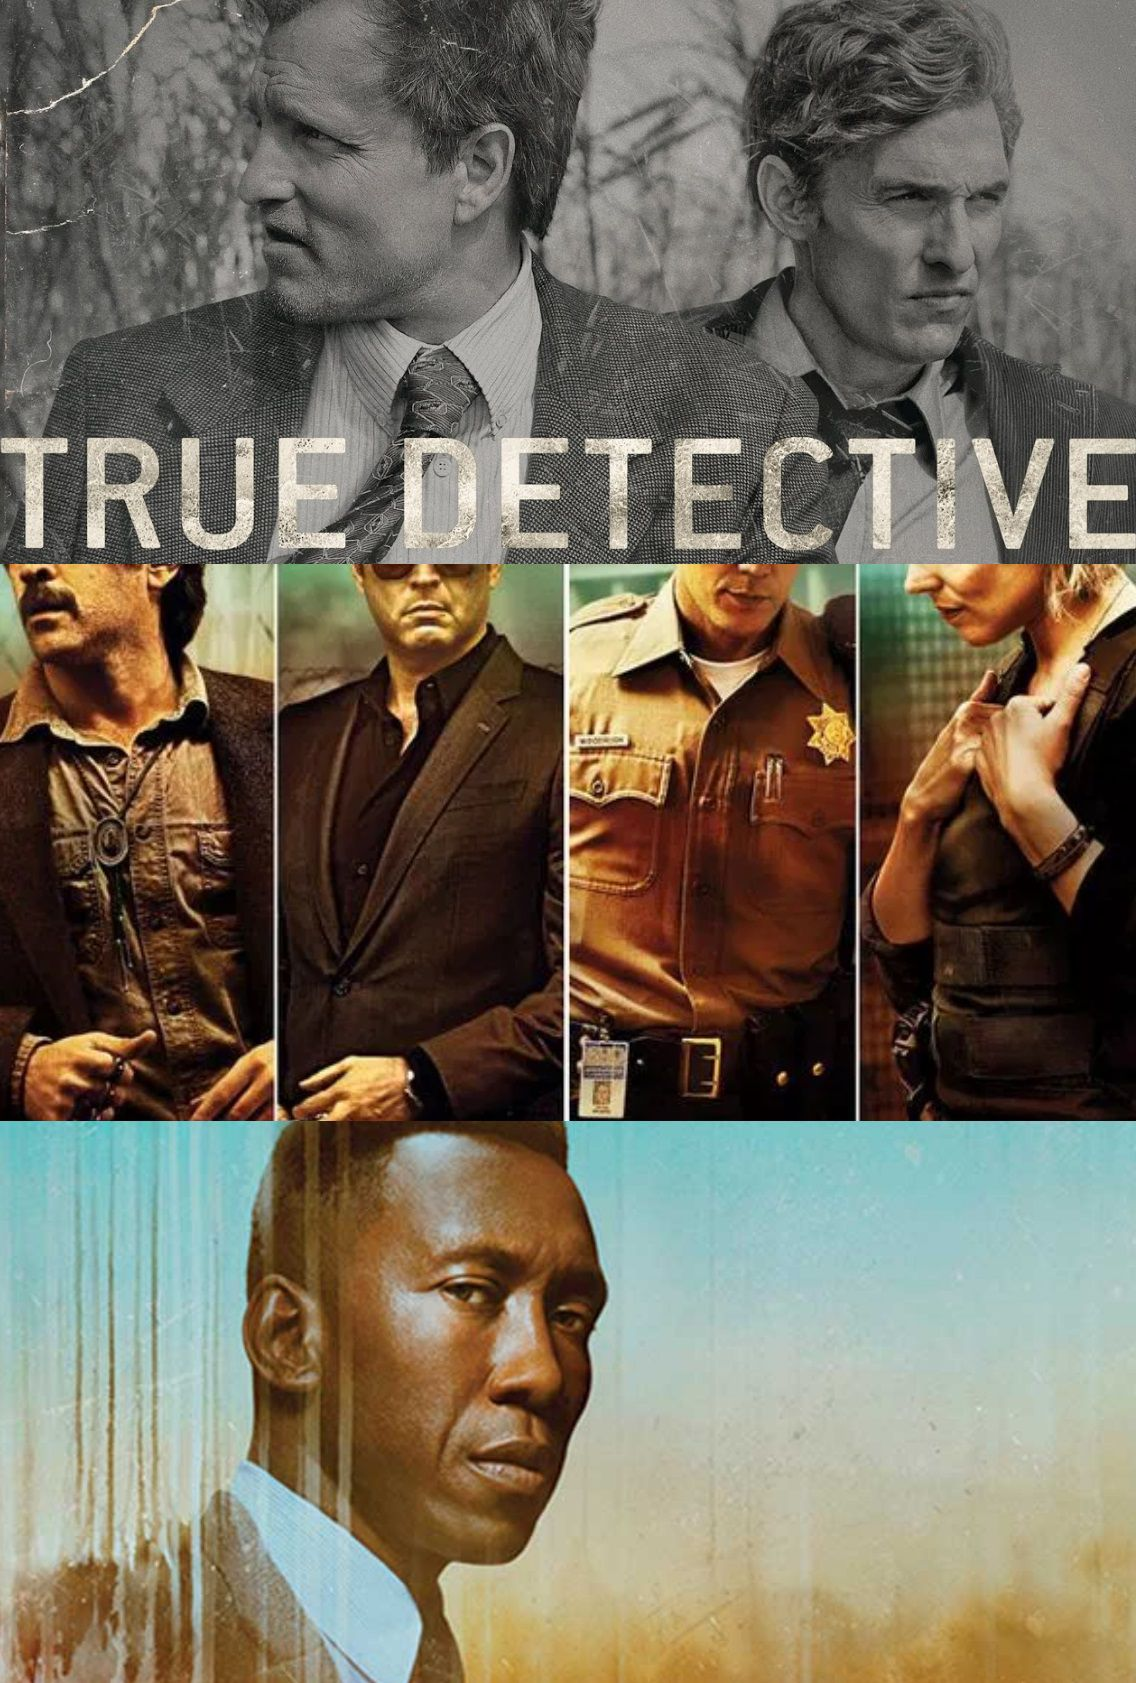 True Detective - Série (2014) streaming VF gratuit complet